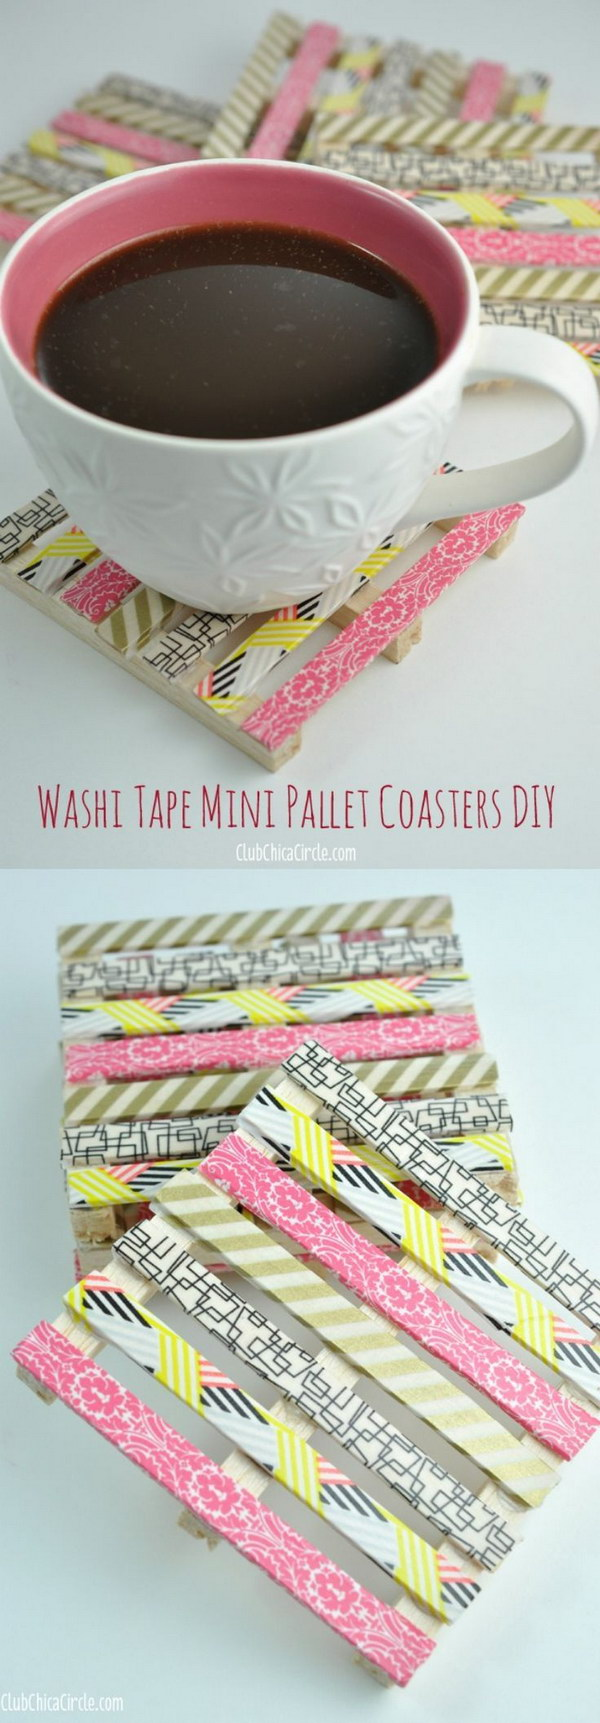 Washi Tape Mini Wood Pallet DIY Coasters. Make stylish coasters with washi tape and mini wood pallets. These can be used as creative housewarming or hostess gifts.